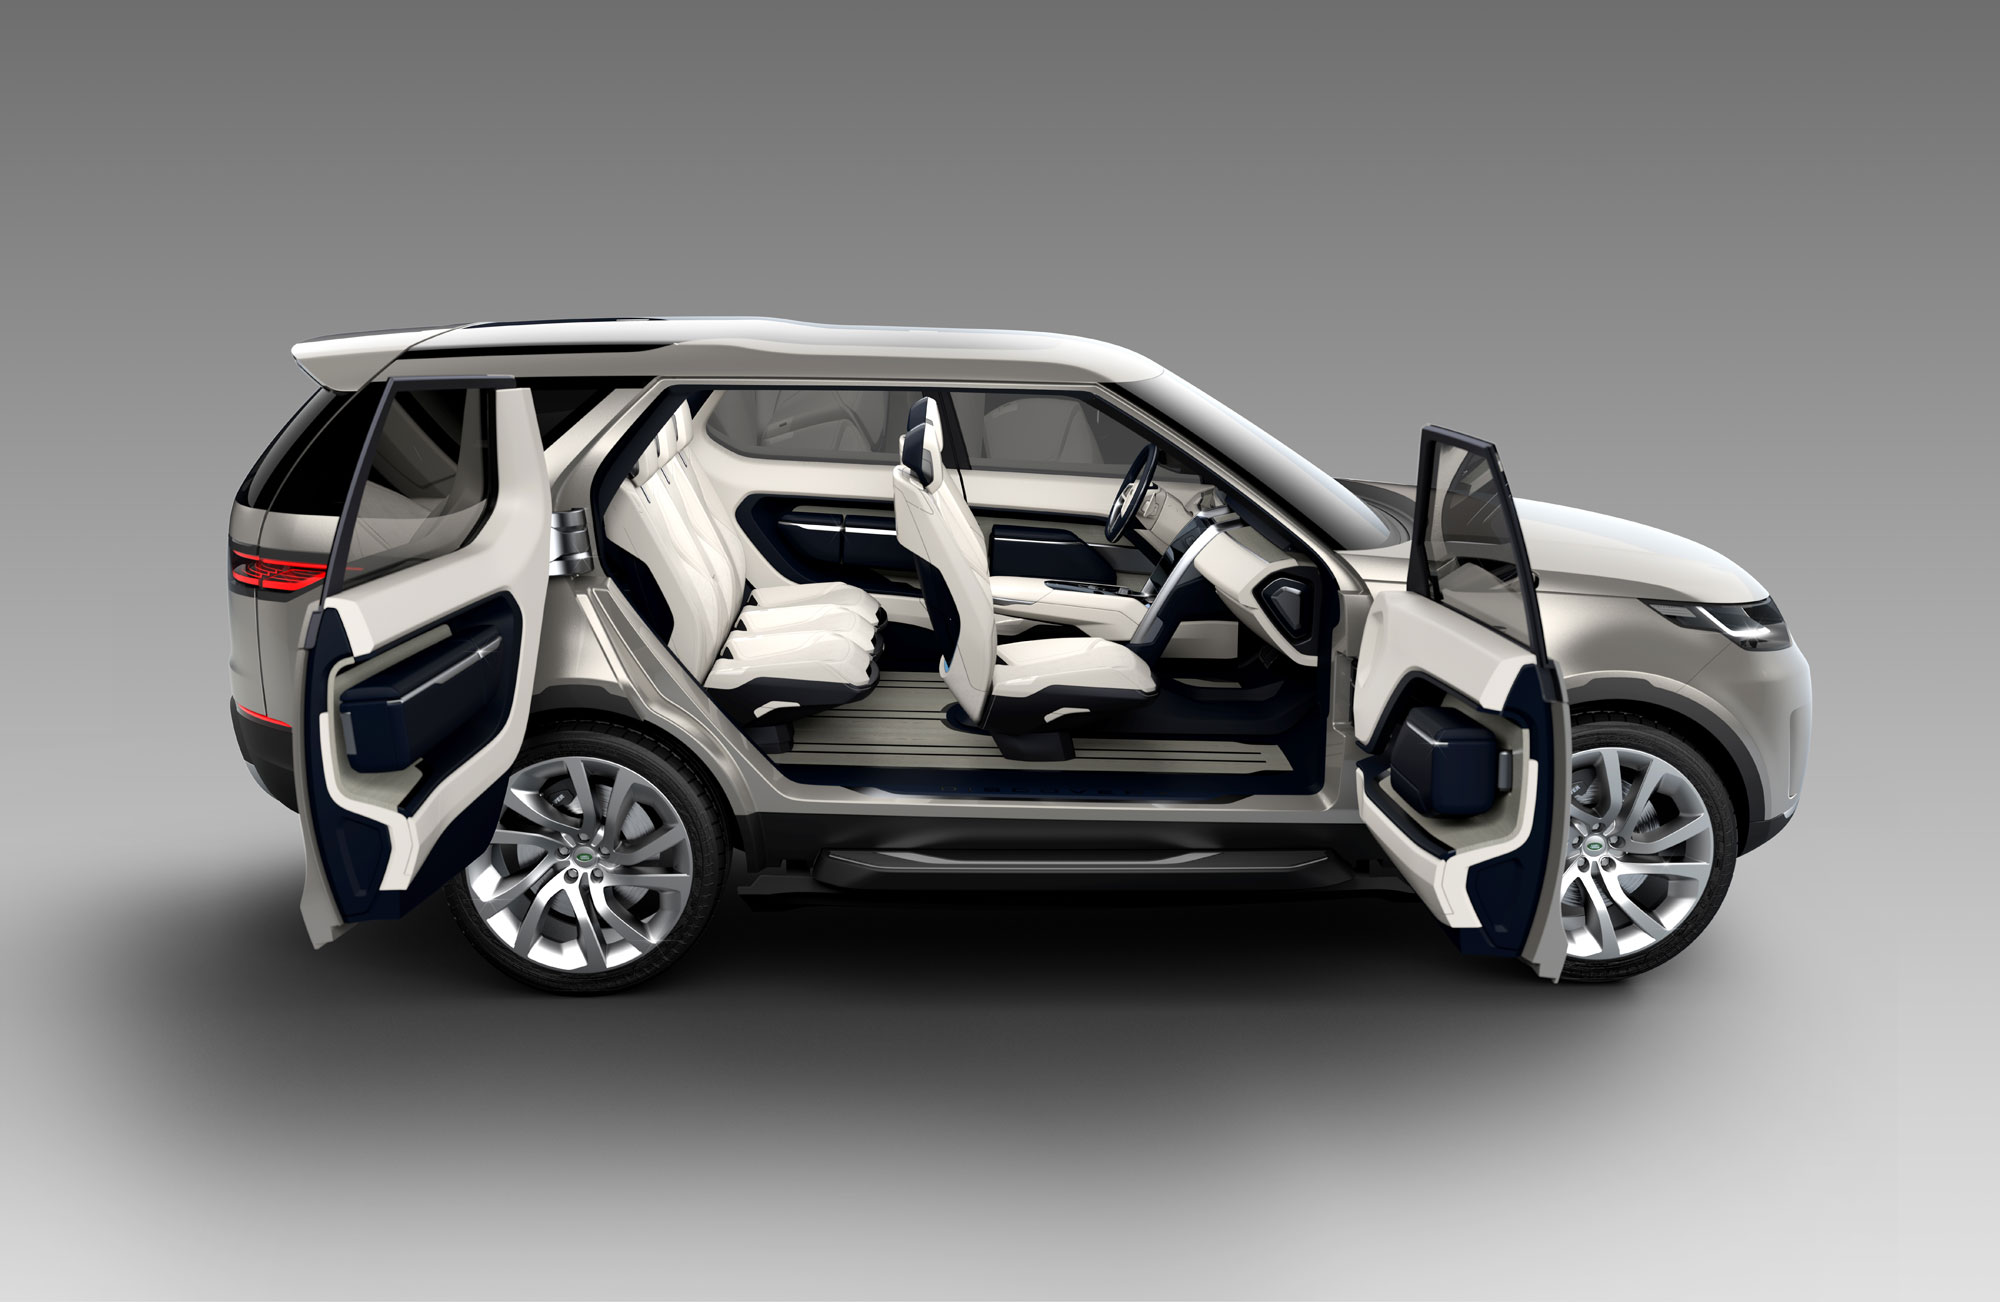 The Land Rover Discovery Vision Concept Revealed! & suicide doors - Rides Magazine